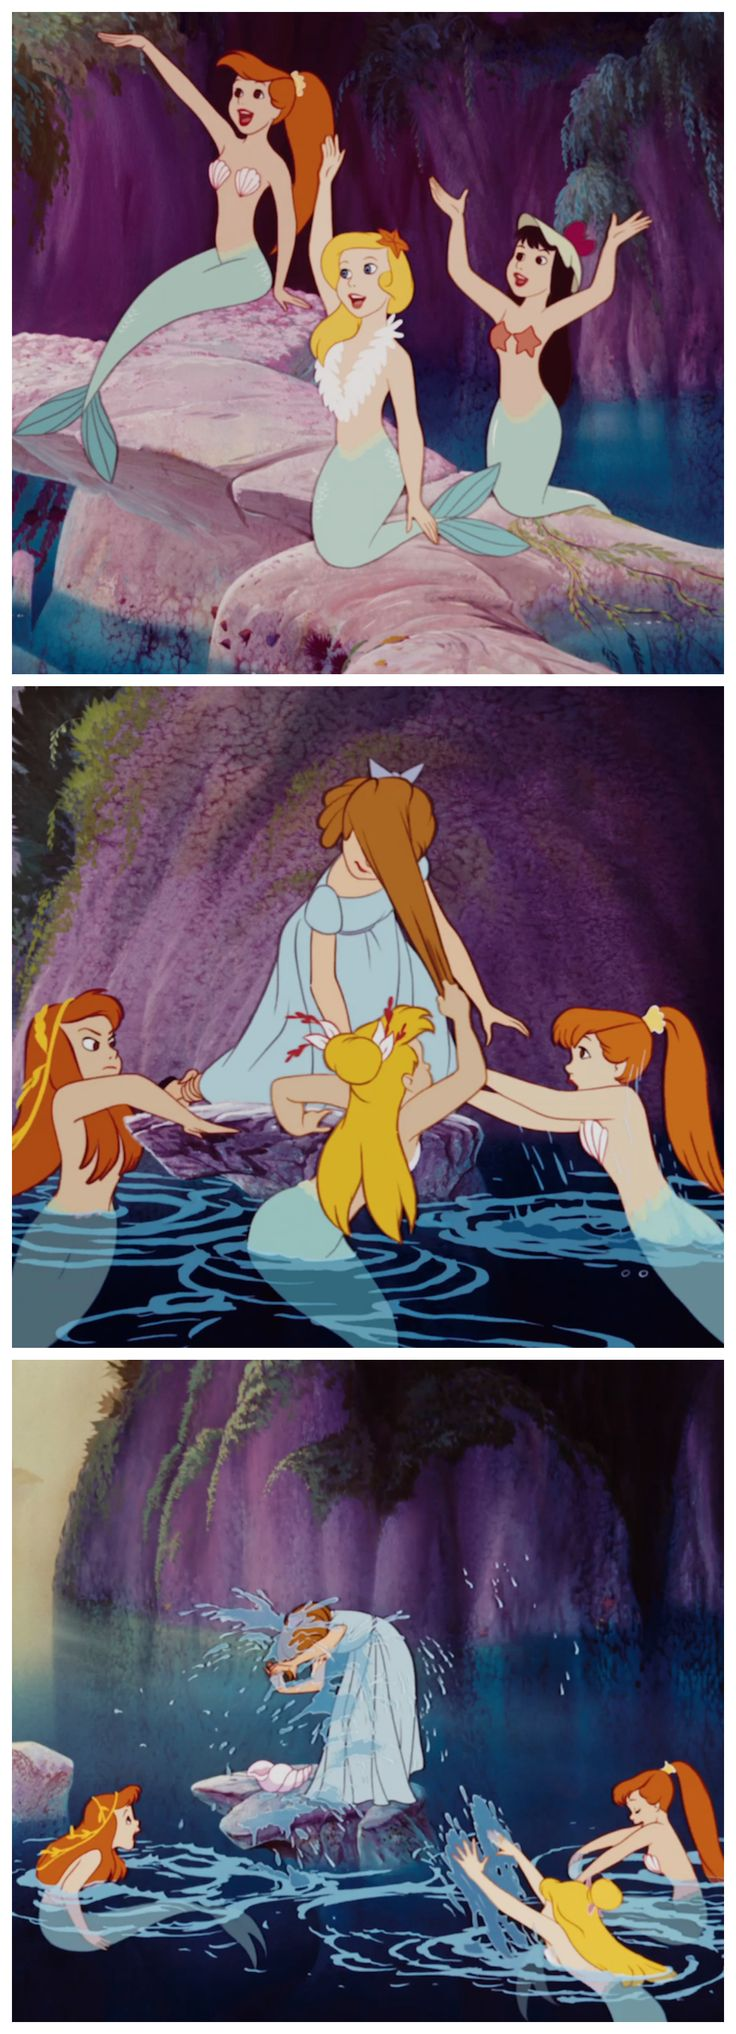 The mermaids from Peter Pan make it very clear that Wendy can't sit with them.